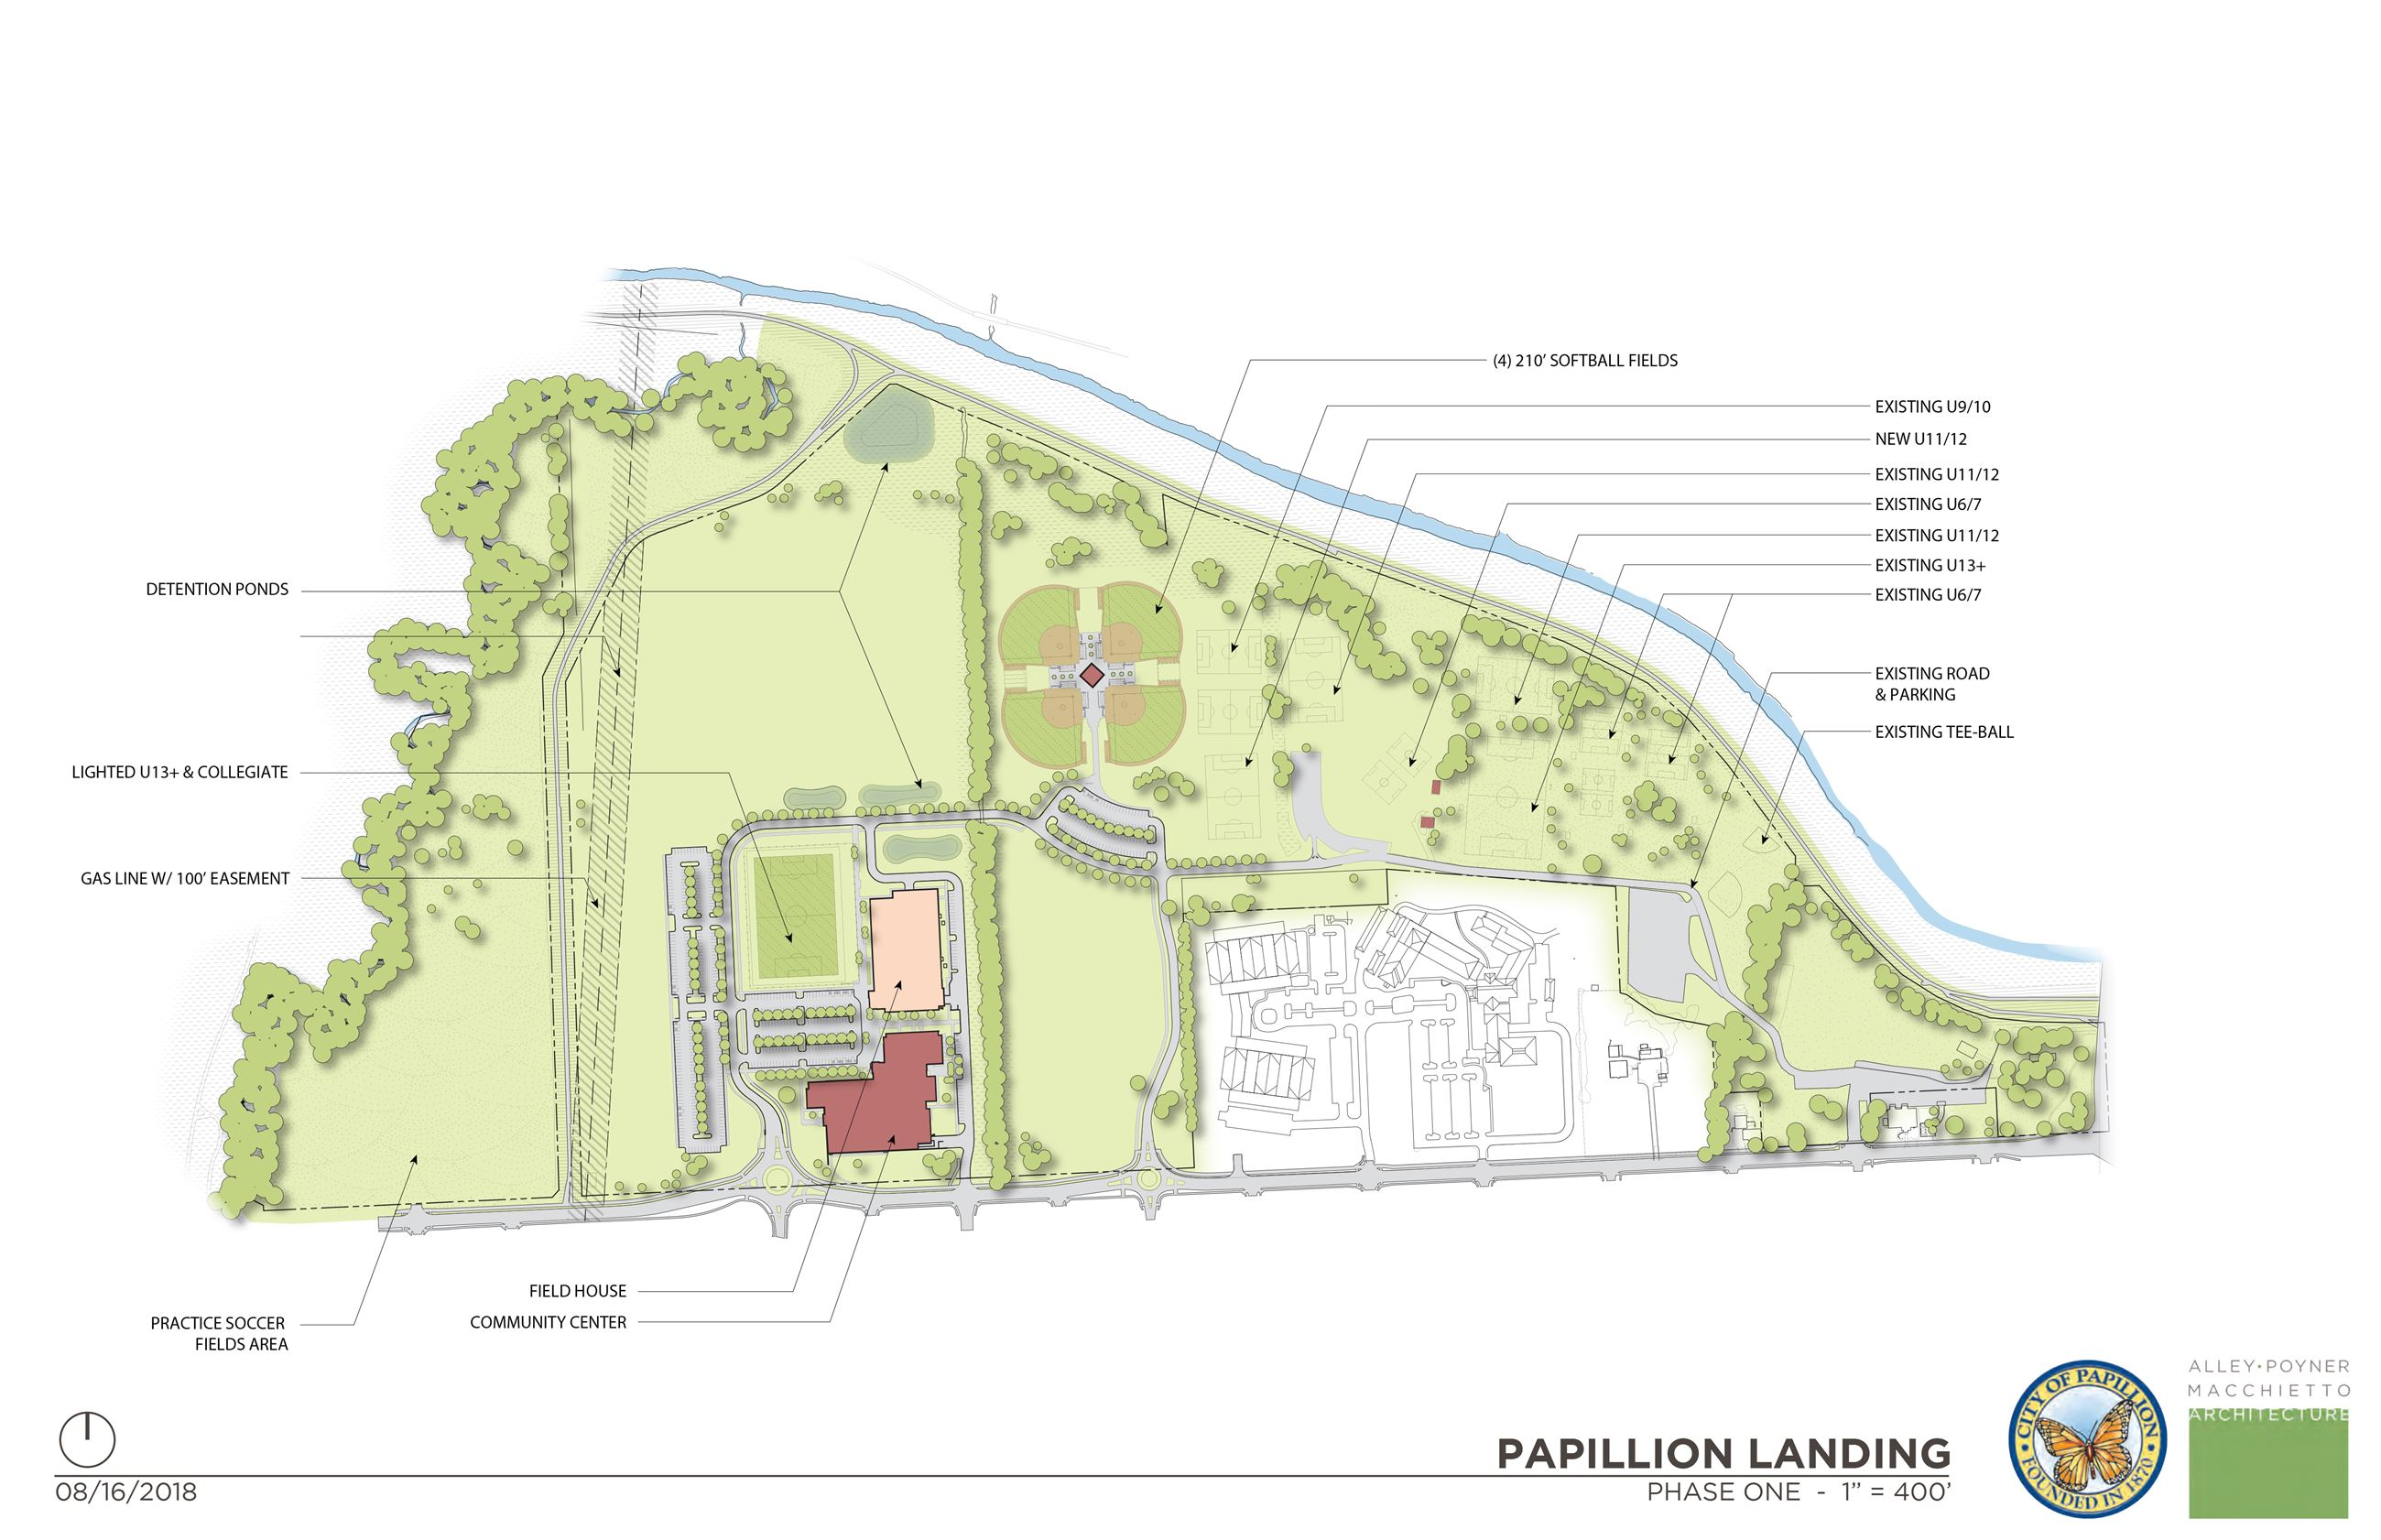 Papillion Landing Site - Phase 1